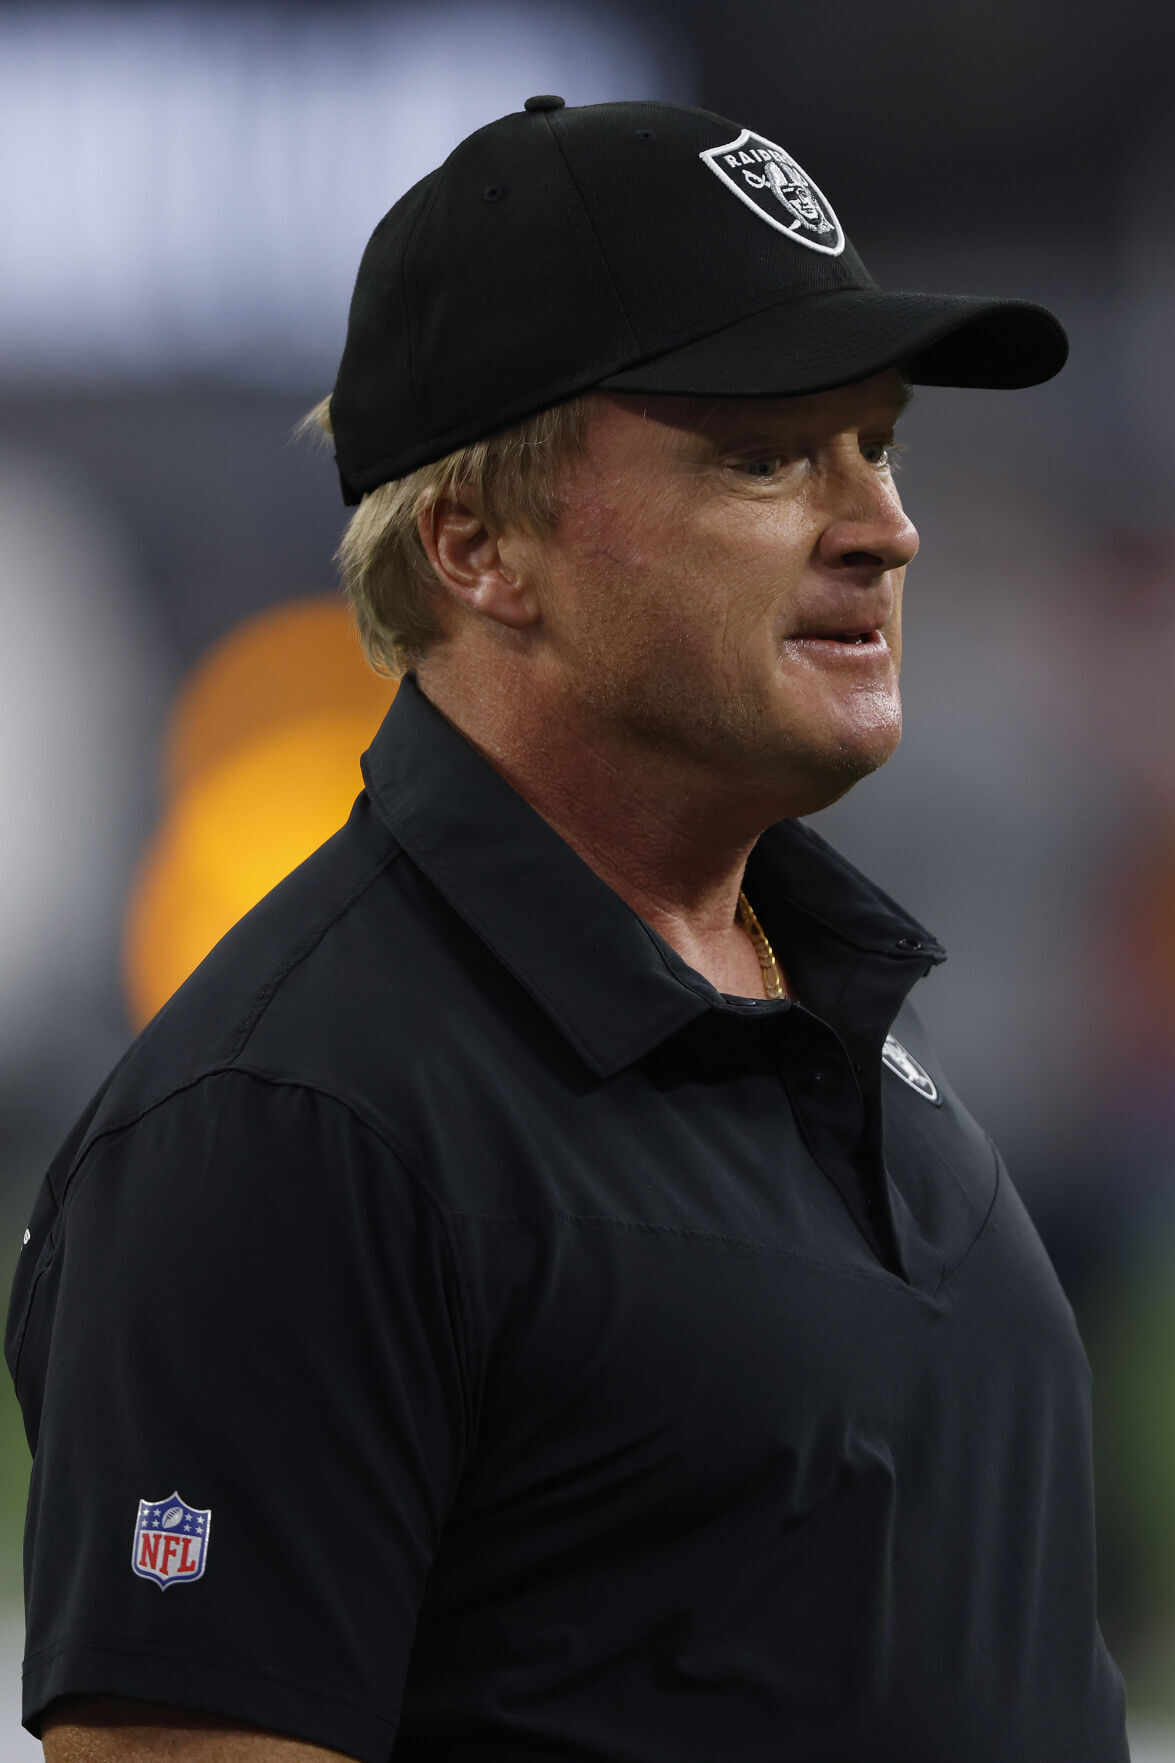 In this file photo, Las Vegas Raiders head coach Jon Gruden looks on before the start of play against the Los Angeles Chargers at SoFi Stadium on Oct. 4, 2021, in Inglewood, California.